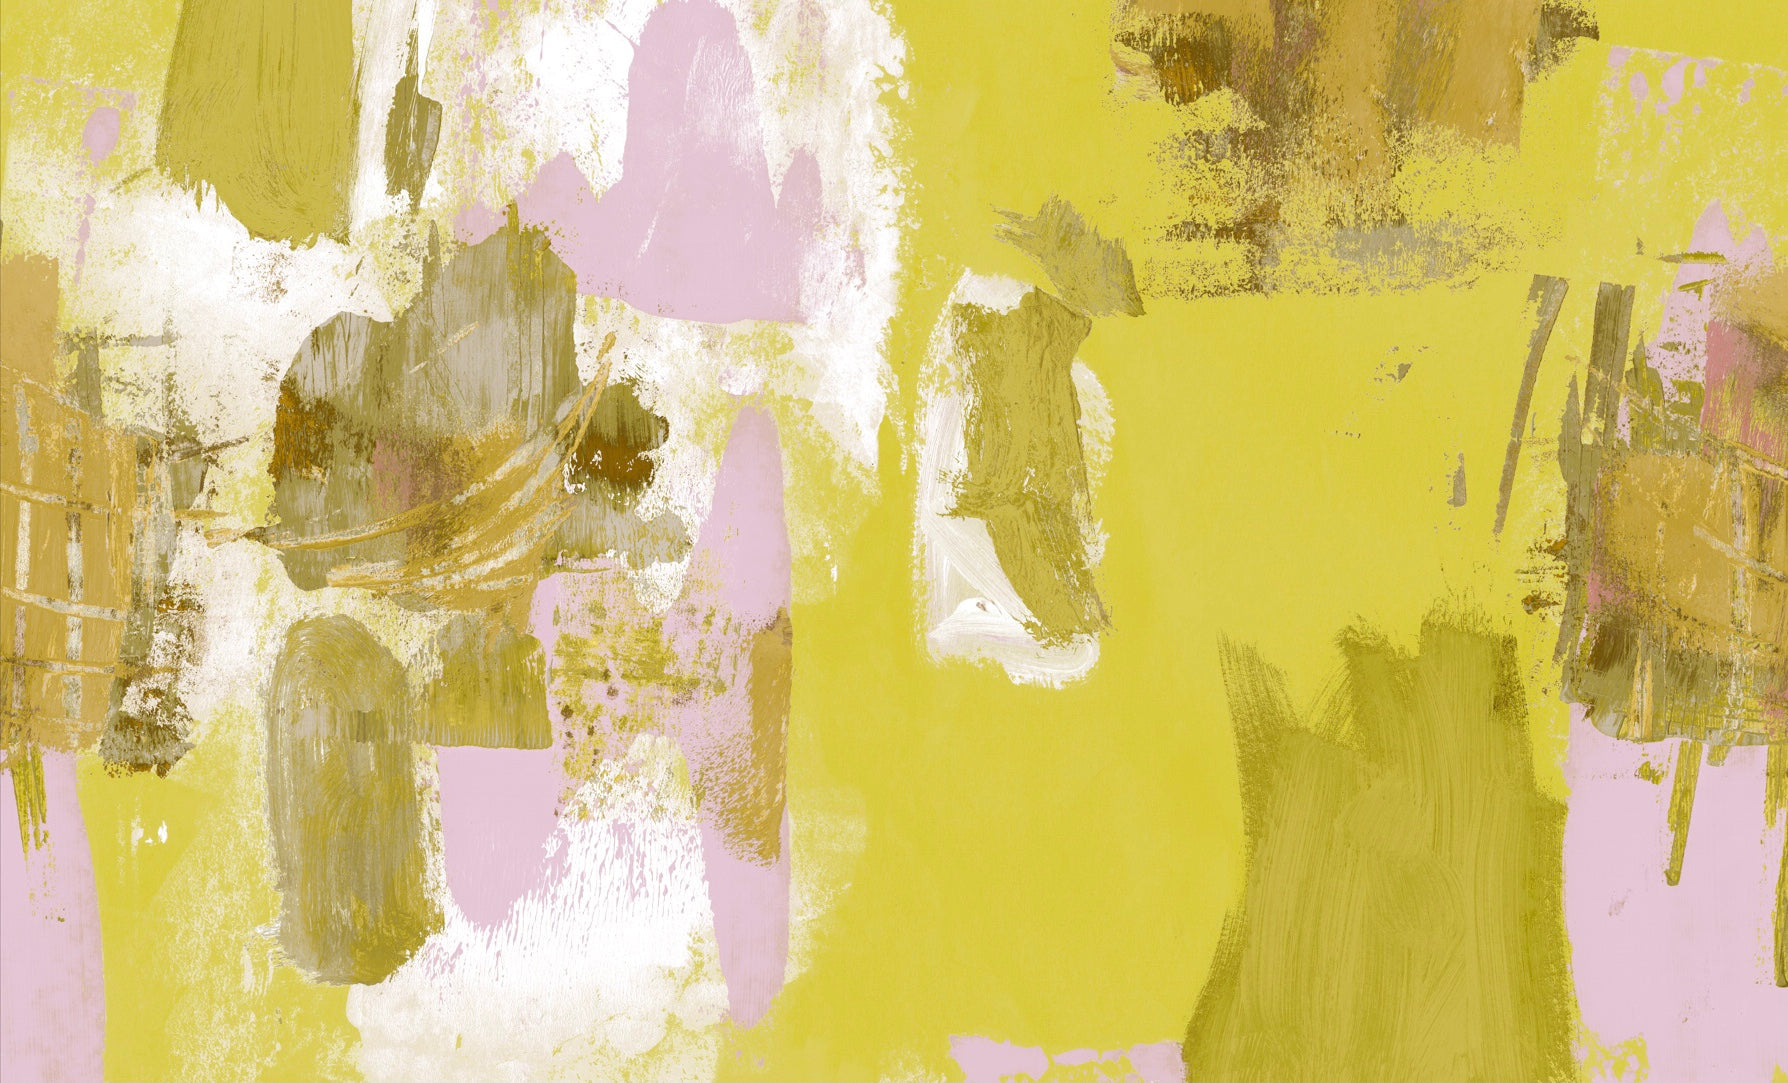 Abstract Painterly Wallpaper- Lemon Yellow & Pink